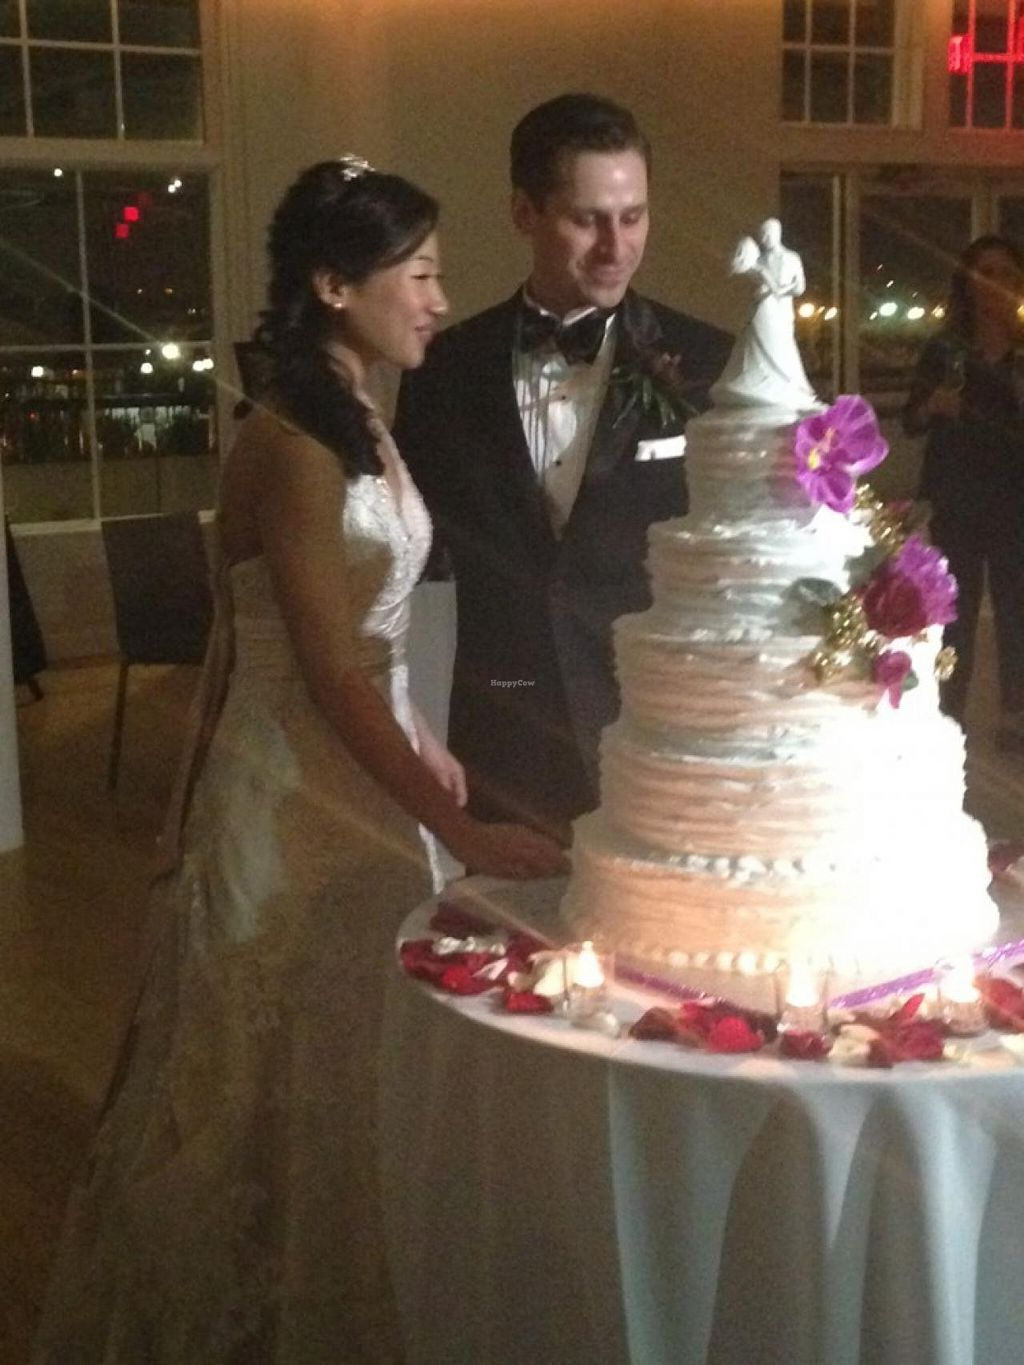 """Photo of Rose Valley Cakes  by <a href=""""/members/profile/slo0go"""">slo0go</a> <br/>Chocolate and coconut five-tiered wedding cake <br/> February 8, 2015  - <a href='/contact/abuse/image/45900/92615'>Report</a>"""